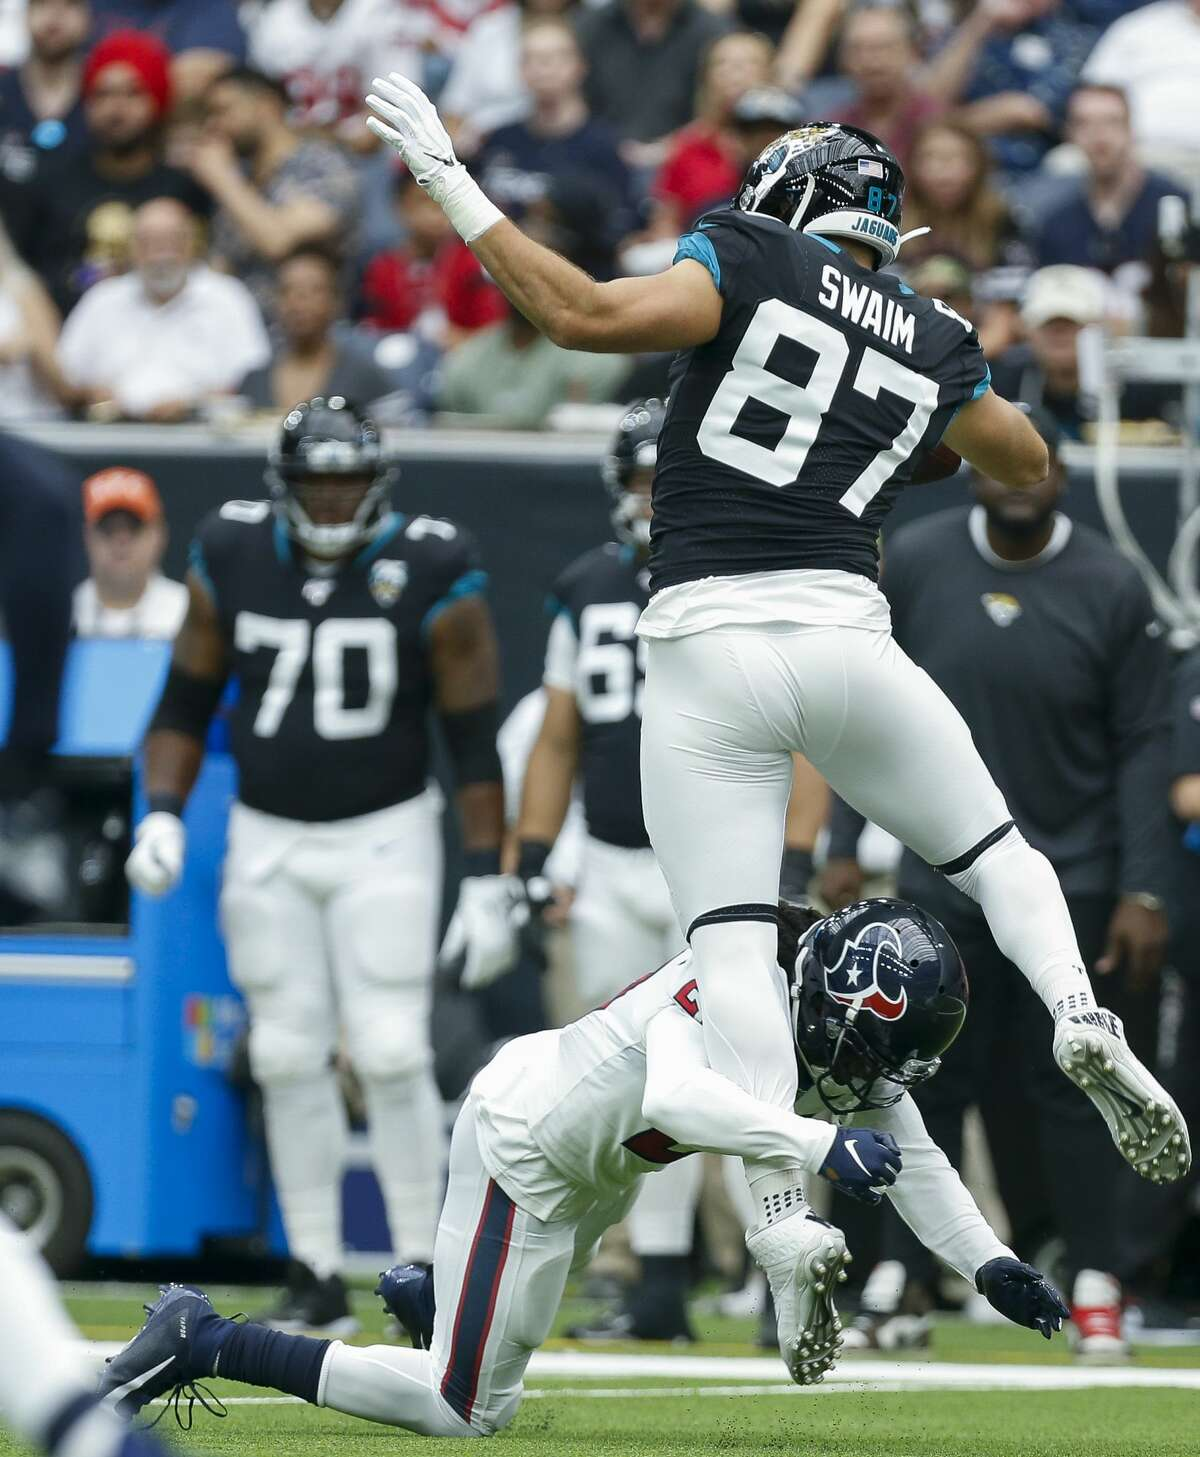 Houston Texans cornerback Bradley Roby (21) tackles Jacksonville Jaguars tight end Geoff Swaim (87) short of a first down during the second quarter of an NFL game at NRG Stadium Sunday, Sept. 15, 2019, in Houston. The Texans won 13-12.